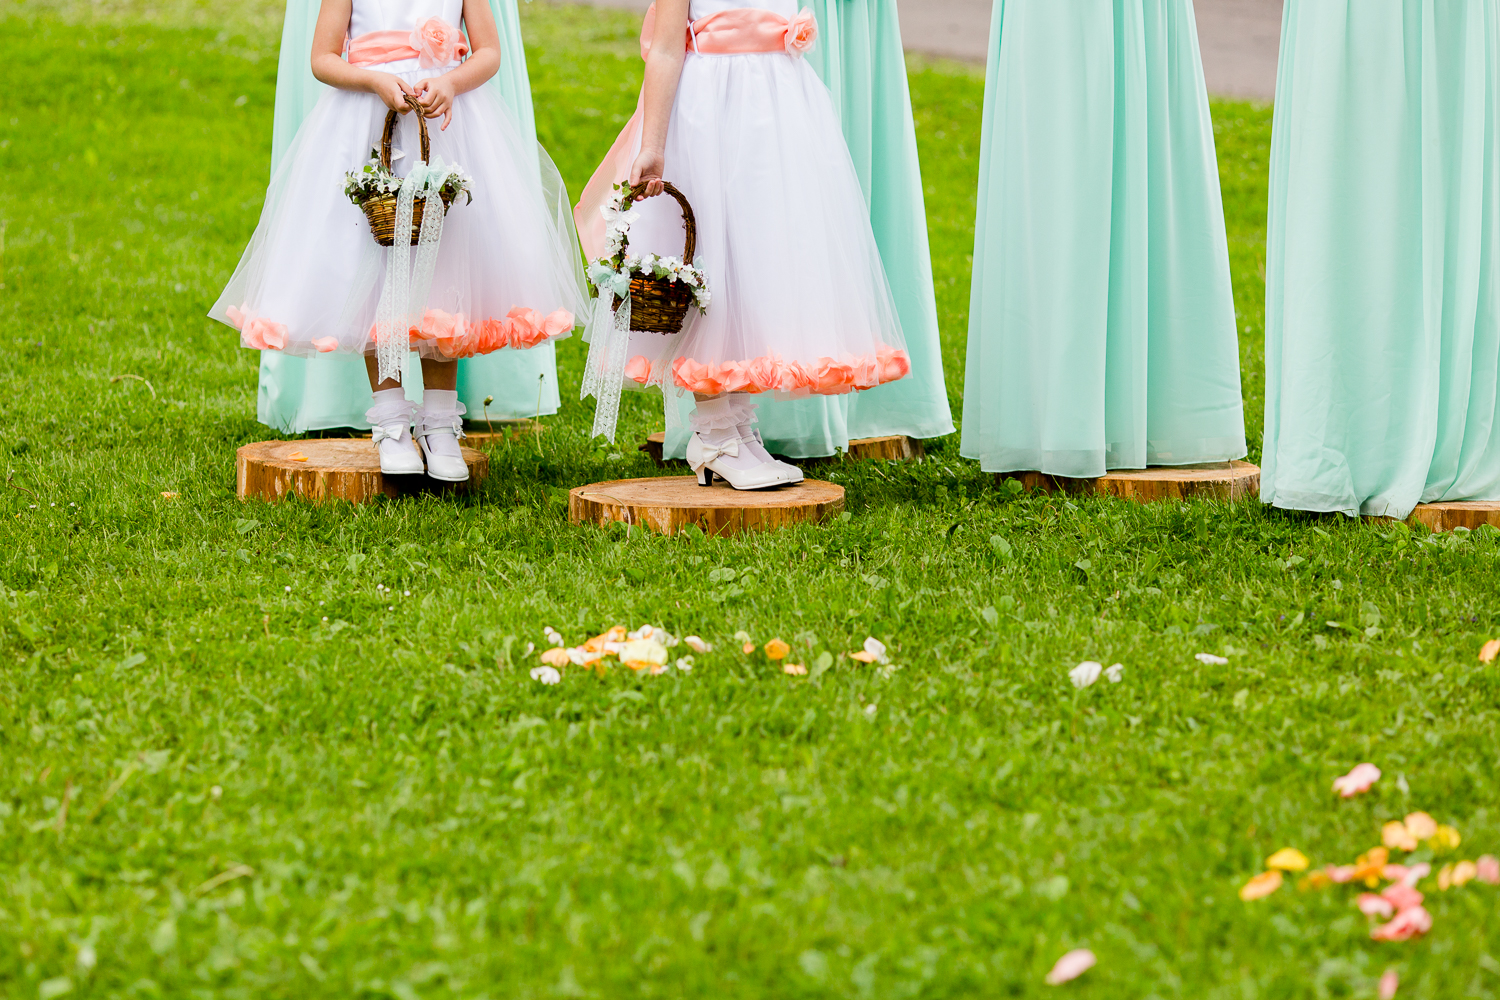 The bottom half of two flower girls. They have rose petals in their dresses and are holding baskets of flower petals.